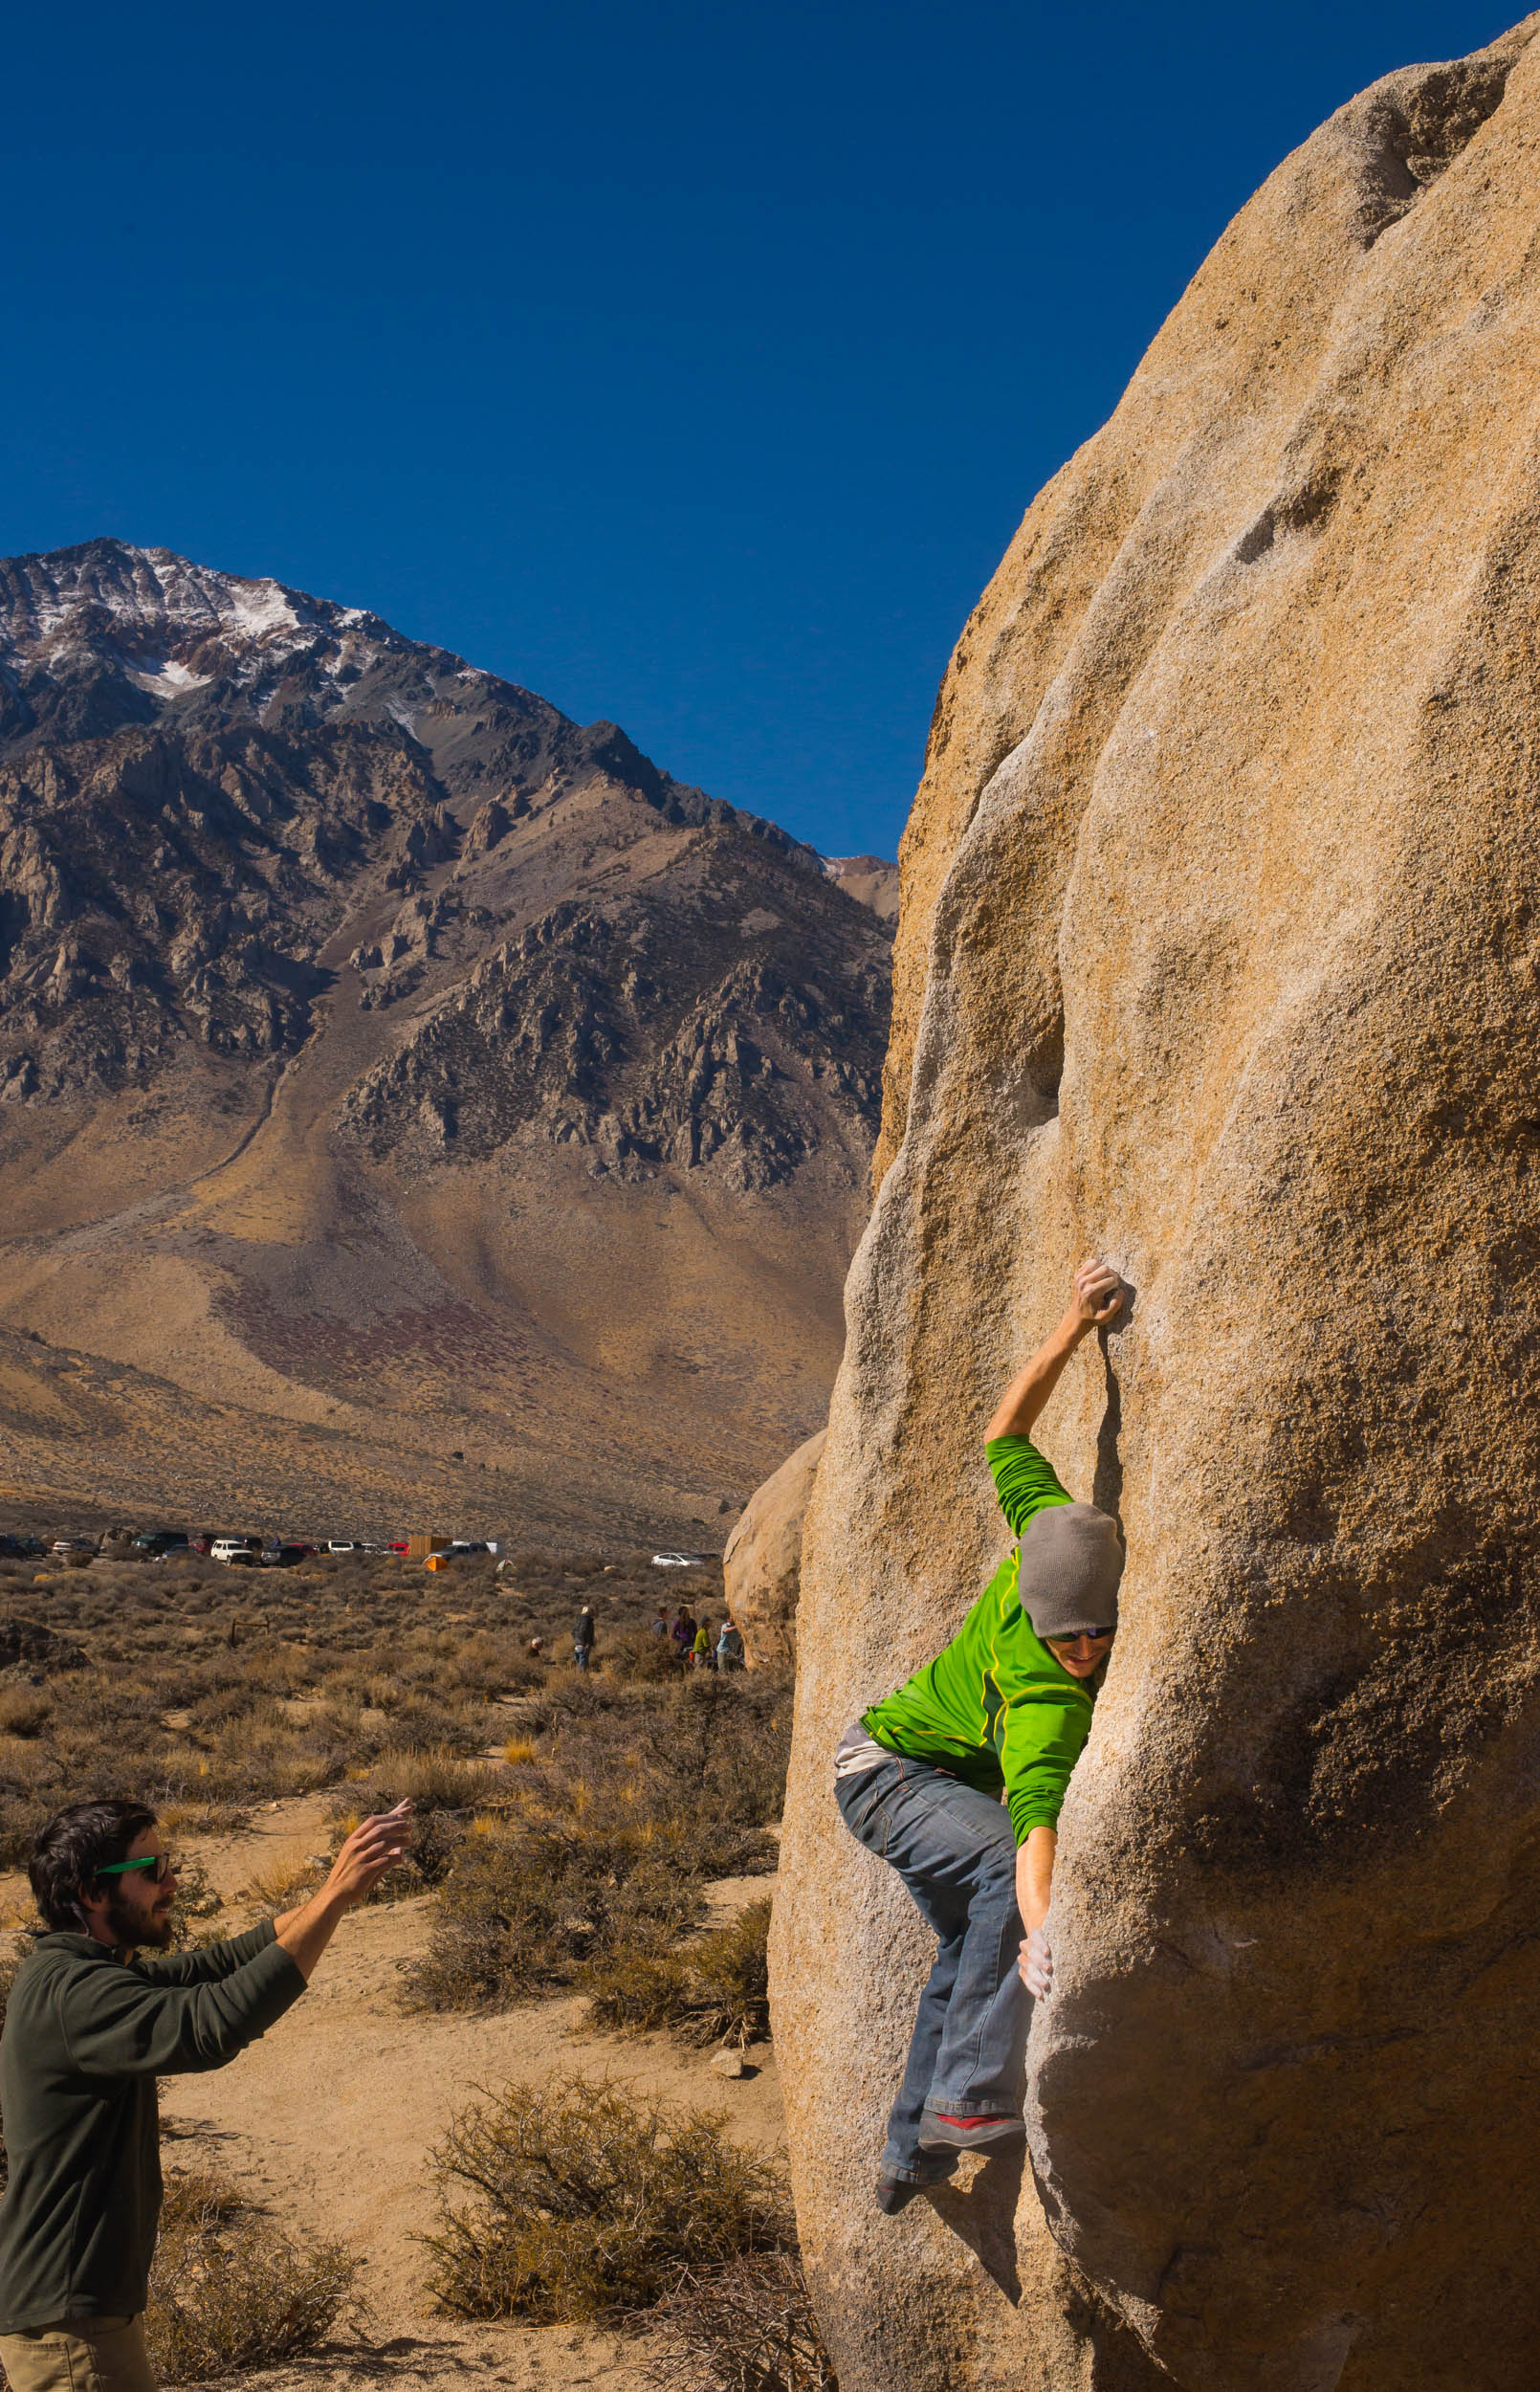 Buttermilk Stem in Bishop California